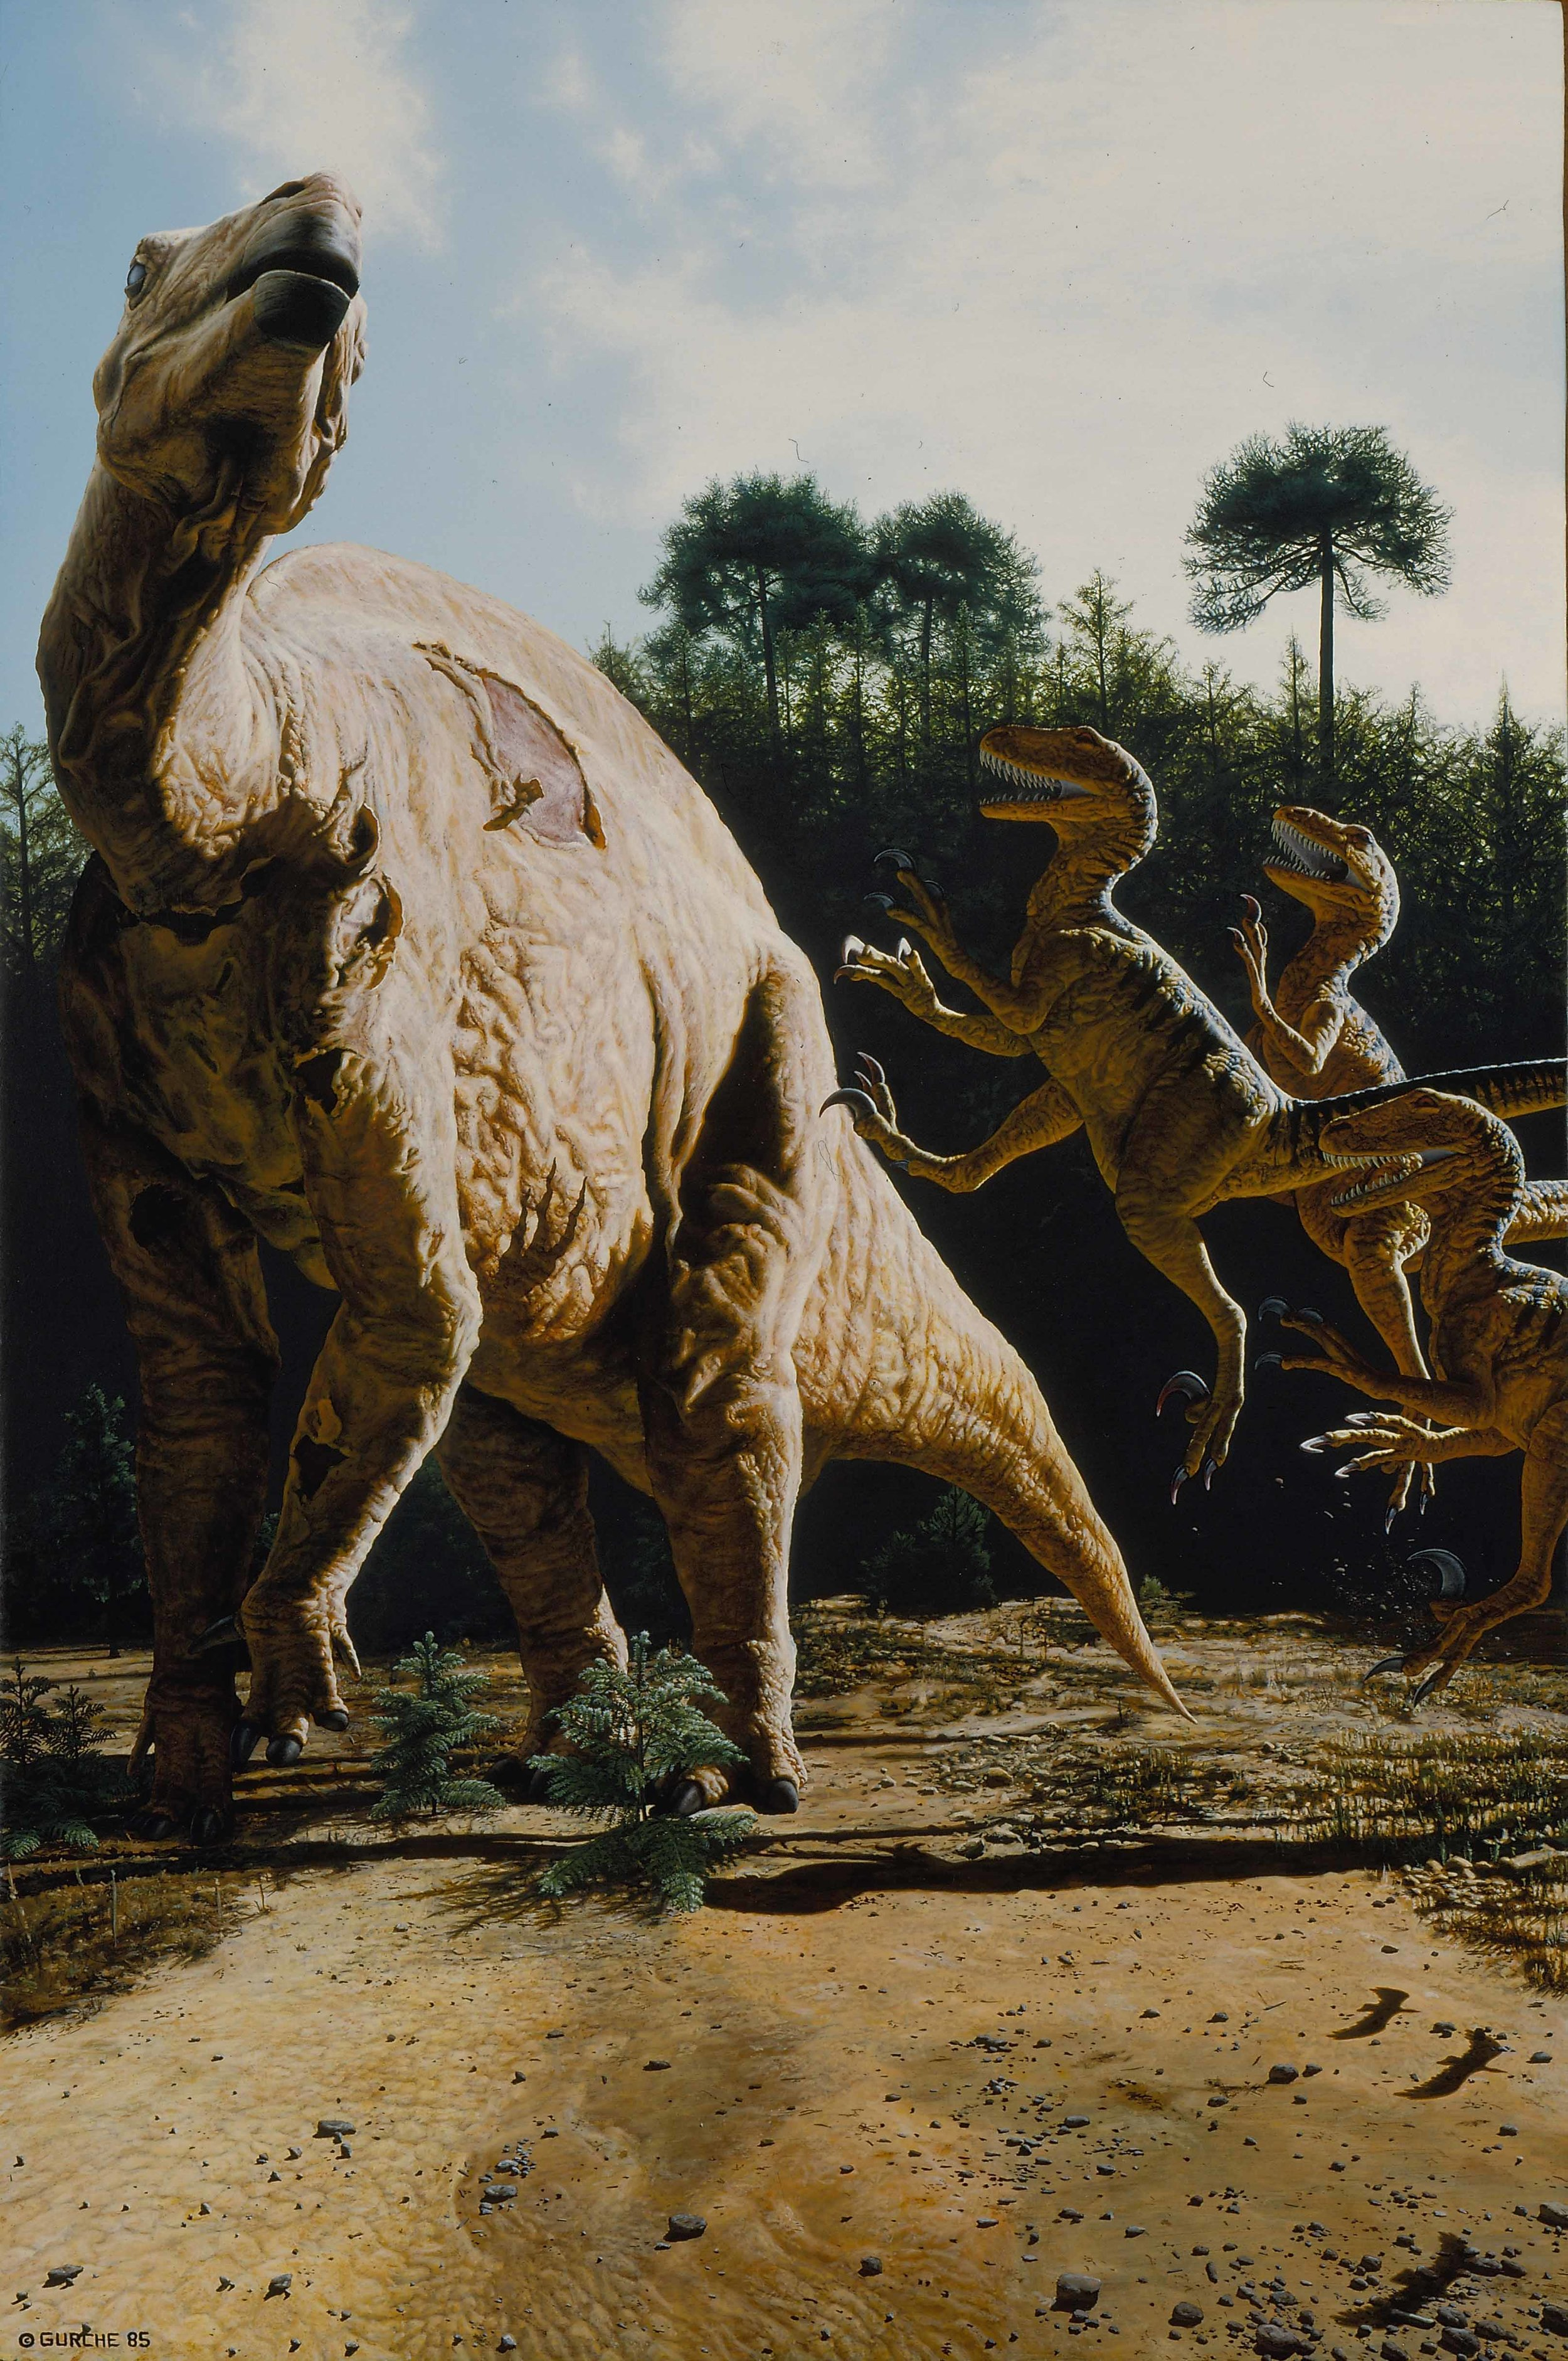 In the mid-1980s, the Smithsonian asked me to create a painted scene of  Deinonychus , the John Ostrum discovery that began the dinosaur revolution of the 80s and 90s. This scene shows three  Deinonychus , thought to be pack hunters, attacking an iguanodontid. It was later used for the cover of Don Lessom's book,  Kings of Creation .  I was moved by the very bird-like skeleton of this animal, and included the shadows of three birds in the painting. The scene would have been different if I'd done it today. Today, we know that  Deinonychus  had feathers.  $65,000